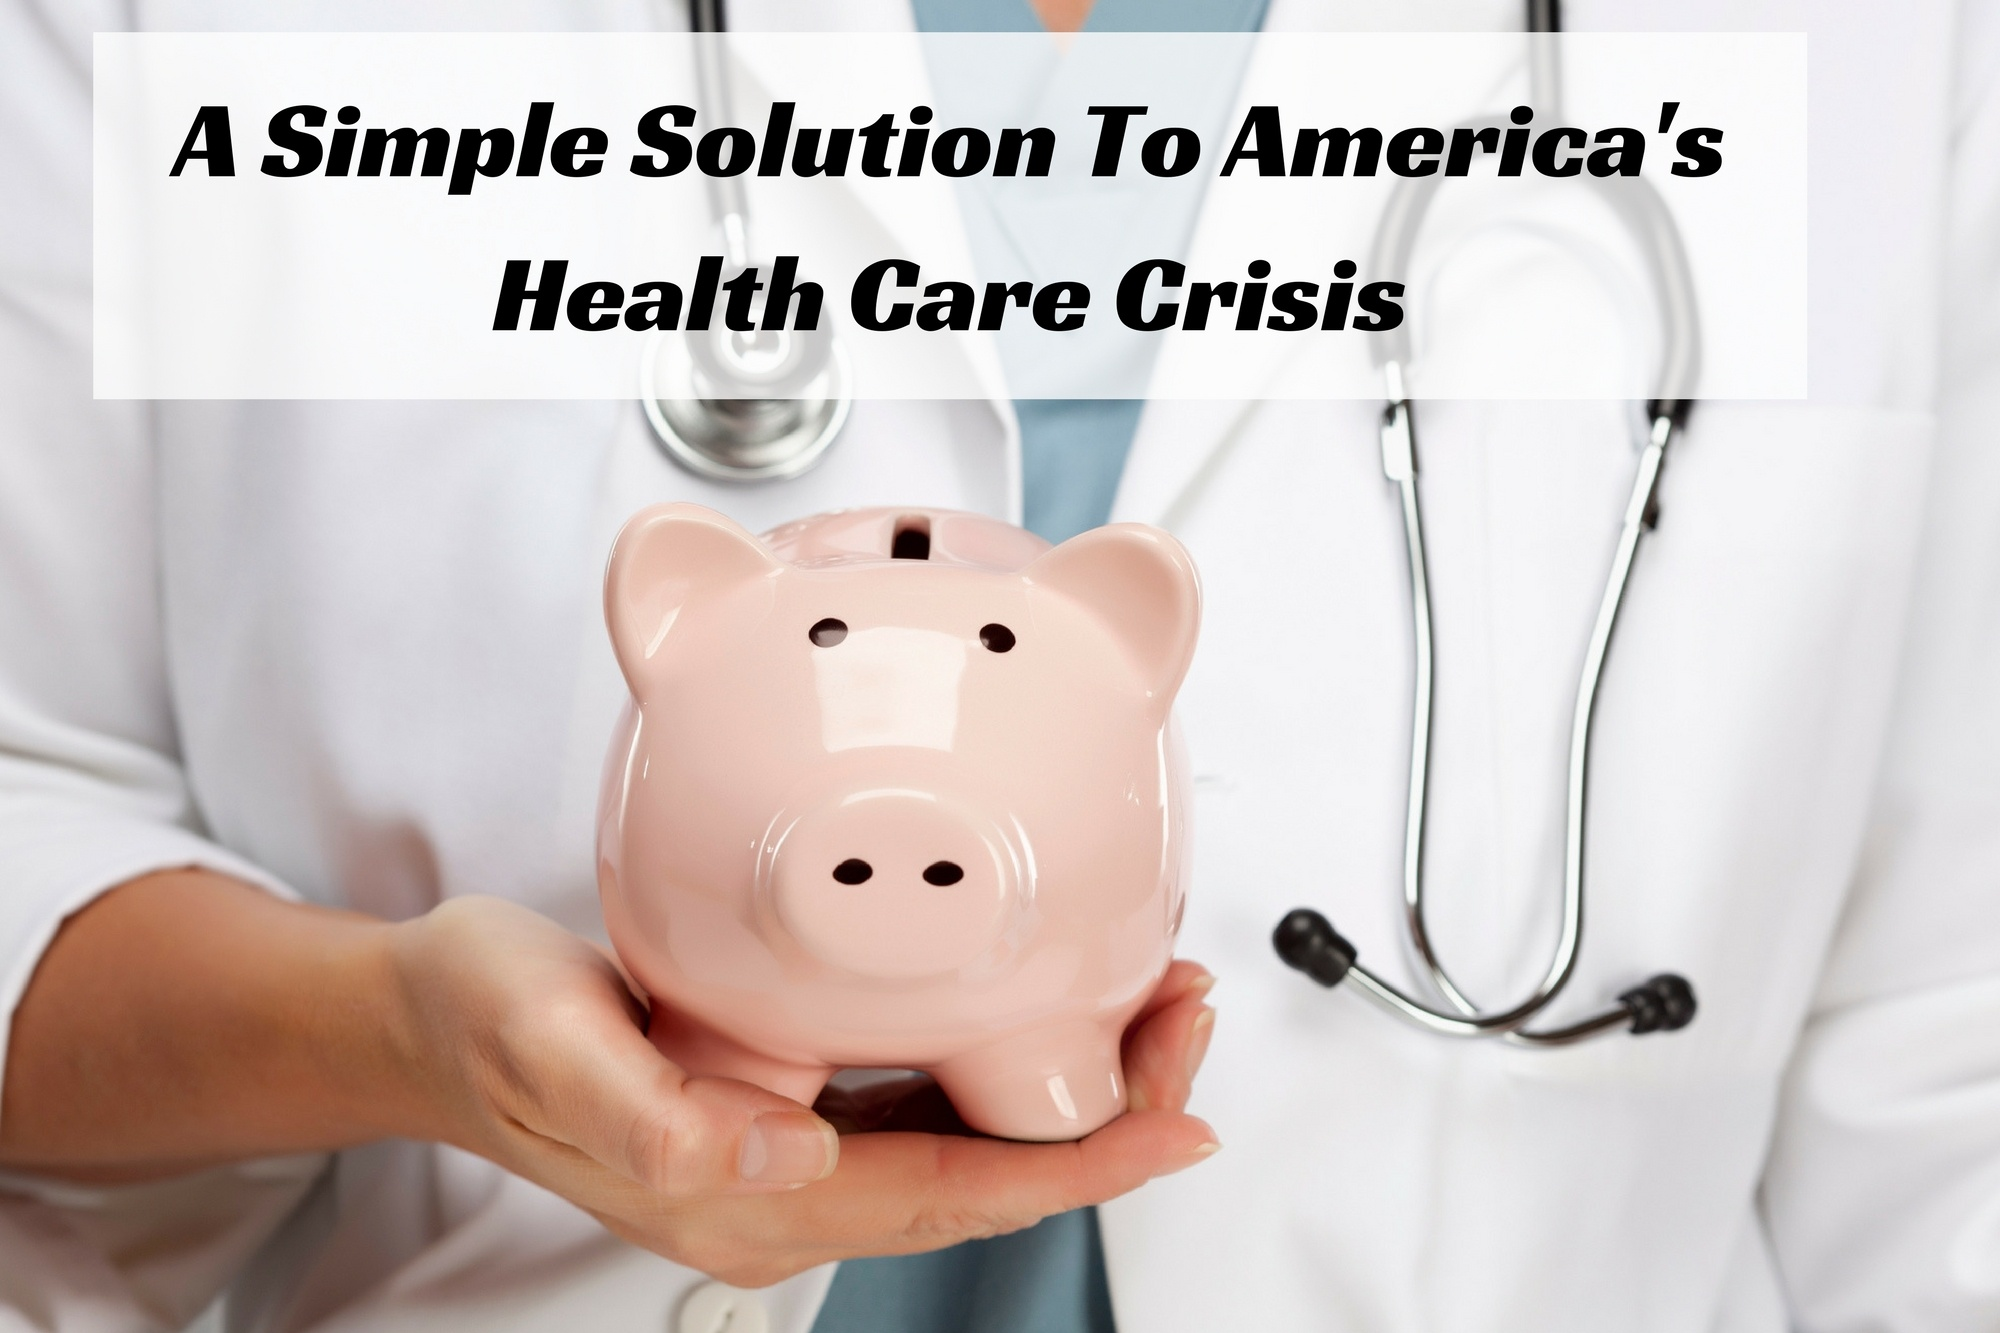 americas health care crisis America is in the grips of a mental health crisis giving weight to what the experts have known for years, mental health america's latest report provides a snapshot into a very real situation, a situation in which the nation's mental health is descending to dangerous levels with no easy way out according to.